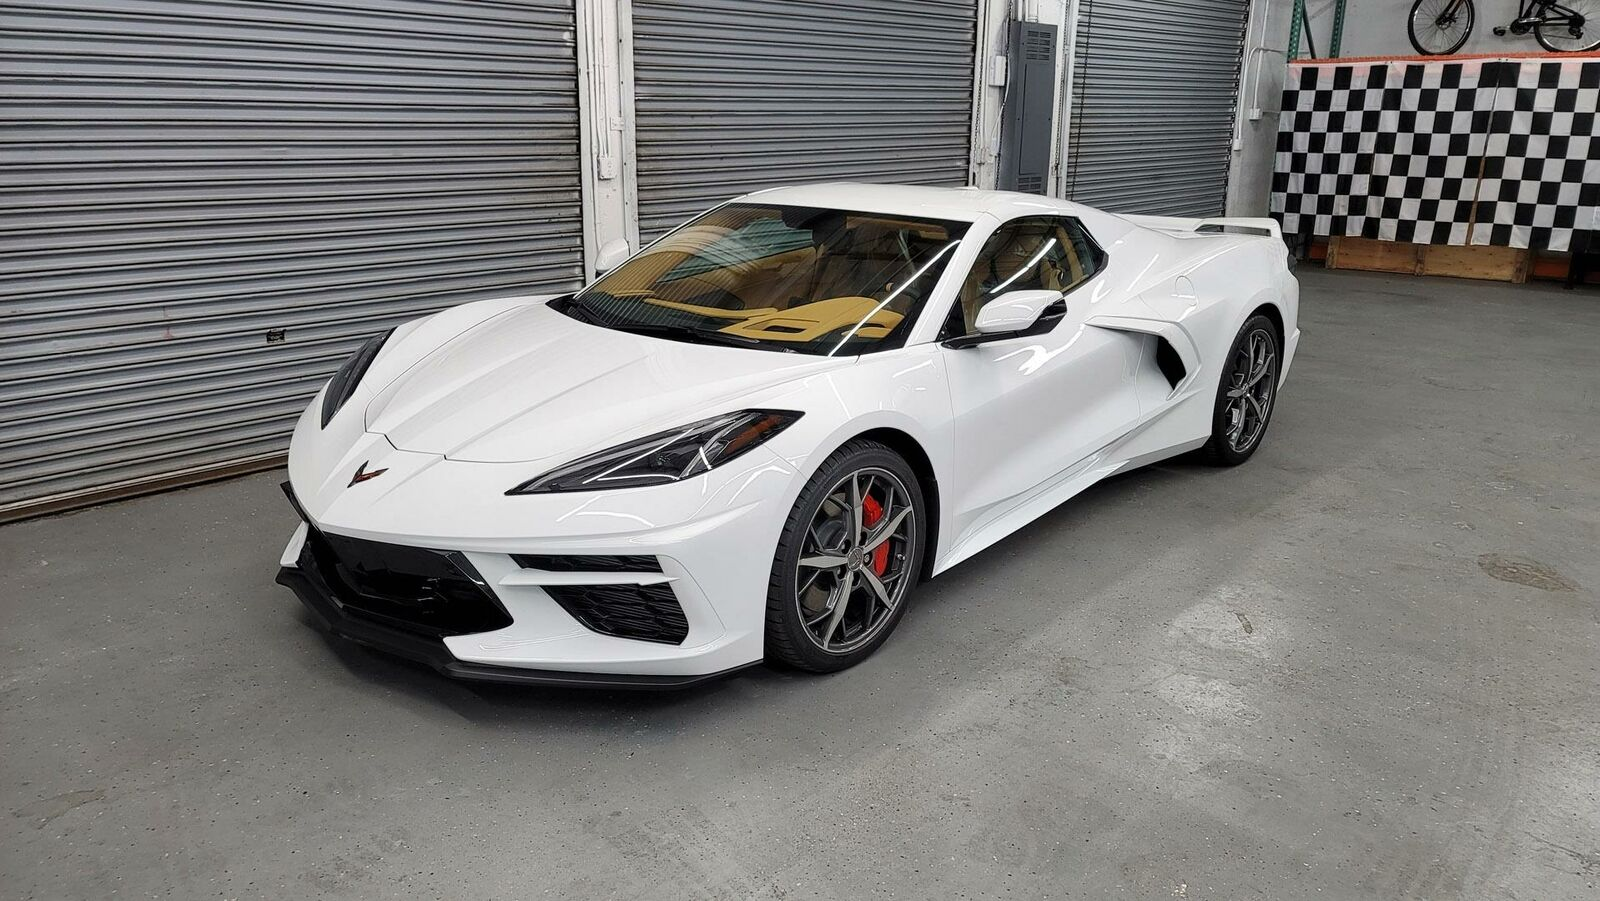 2021 White Chevrolet Corvette  3LT | C7 Corvette Photo 1